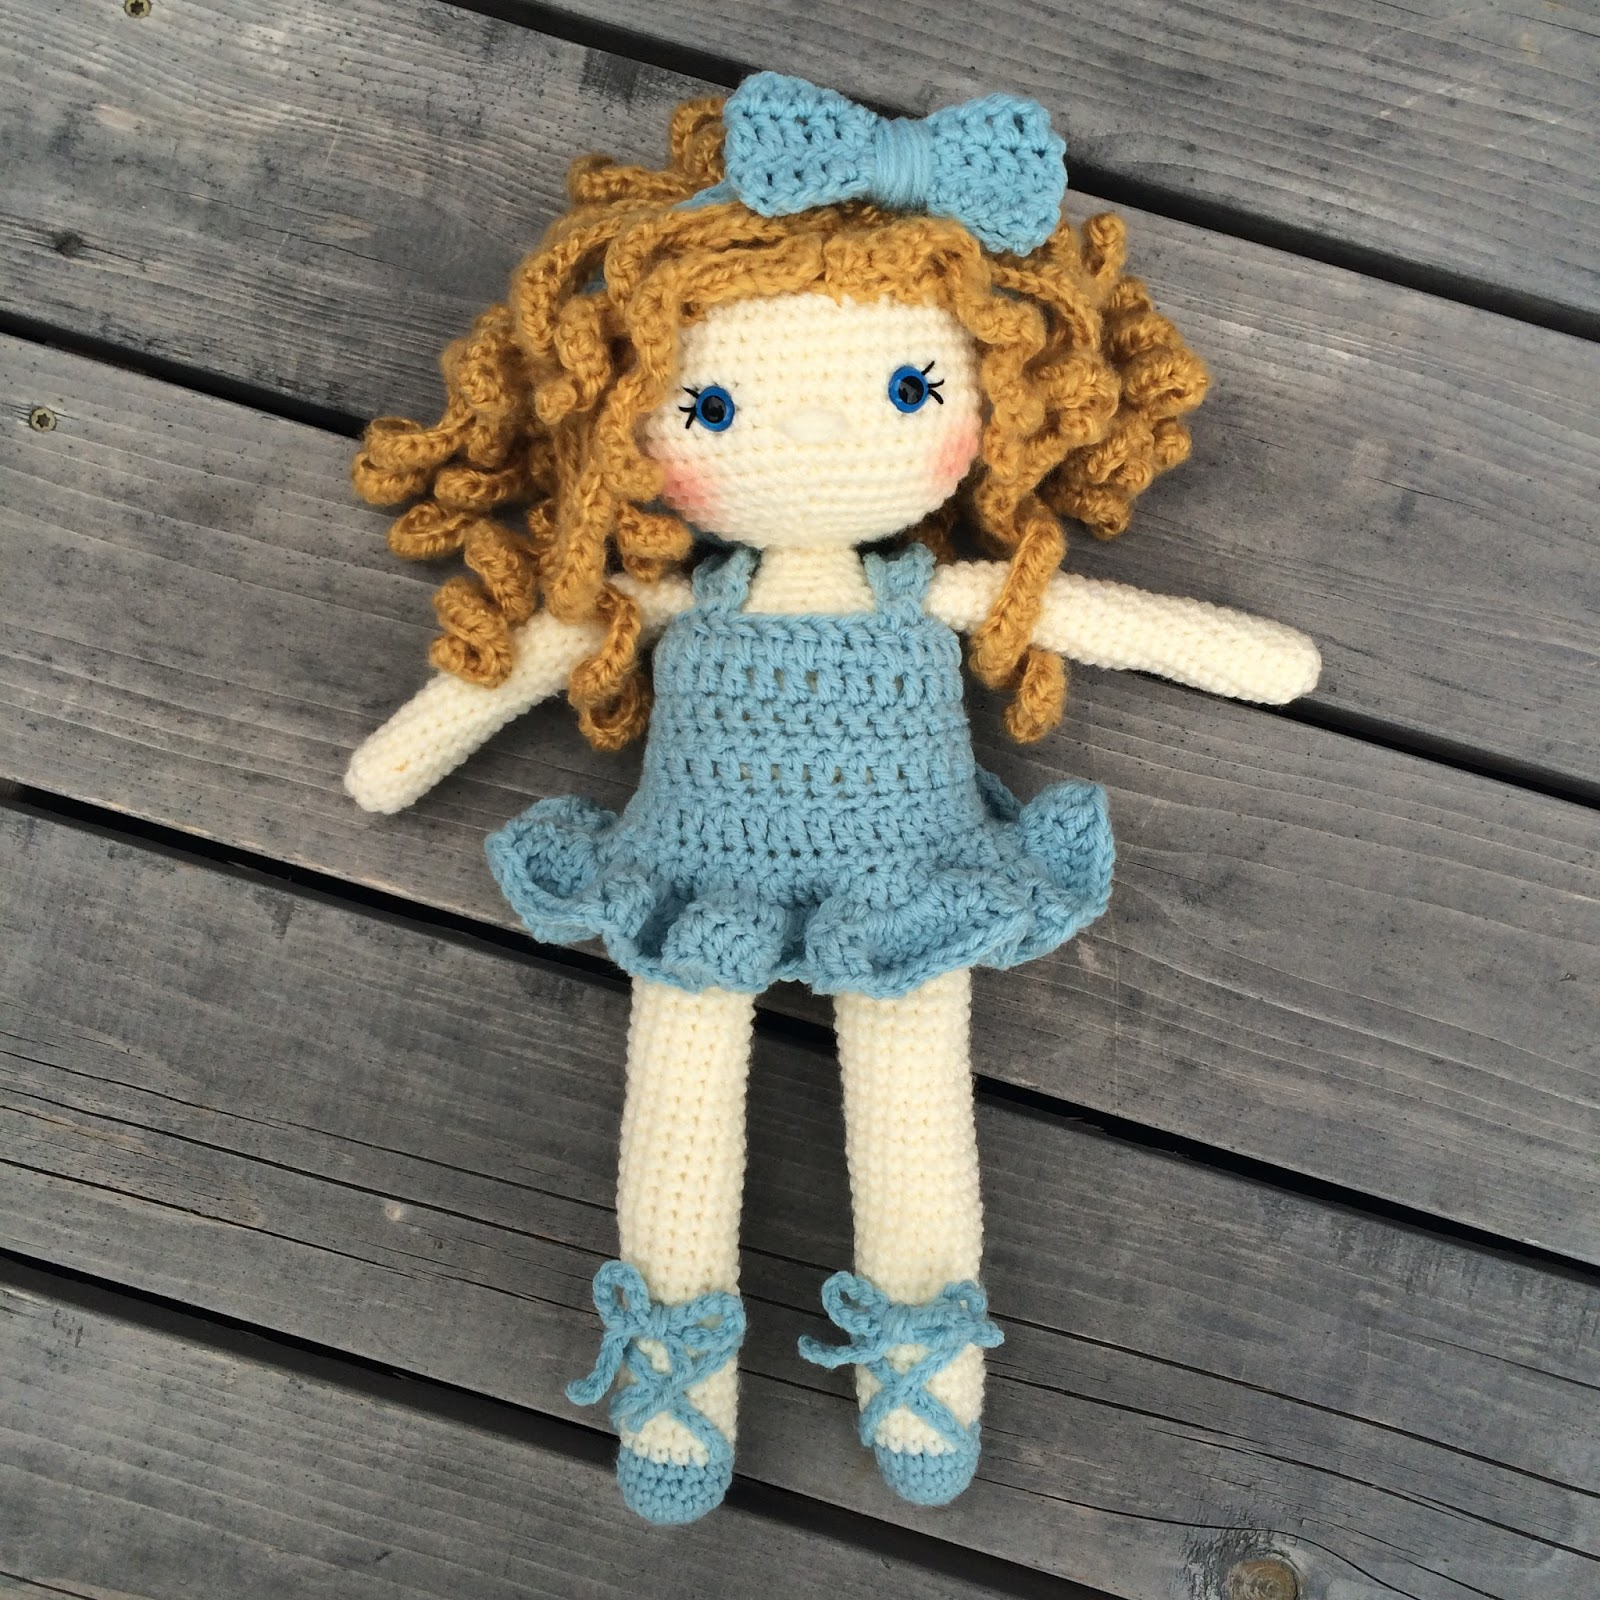 Little lady doll crochet pattern - Amigurumi Today | 1600x1600